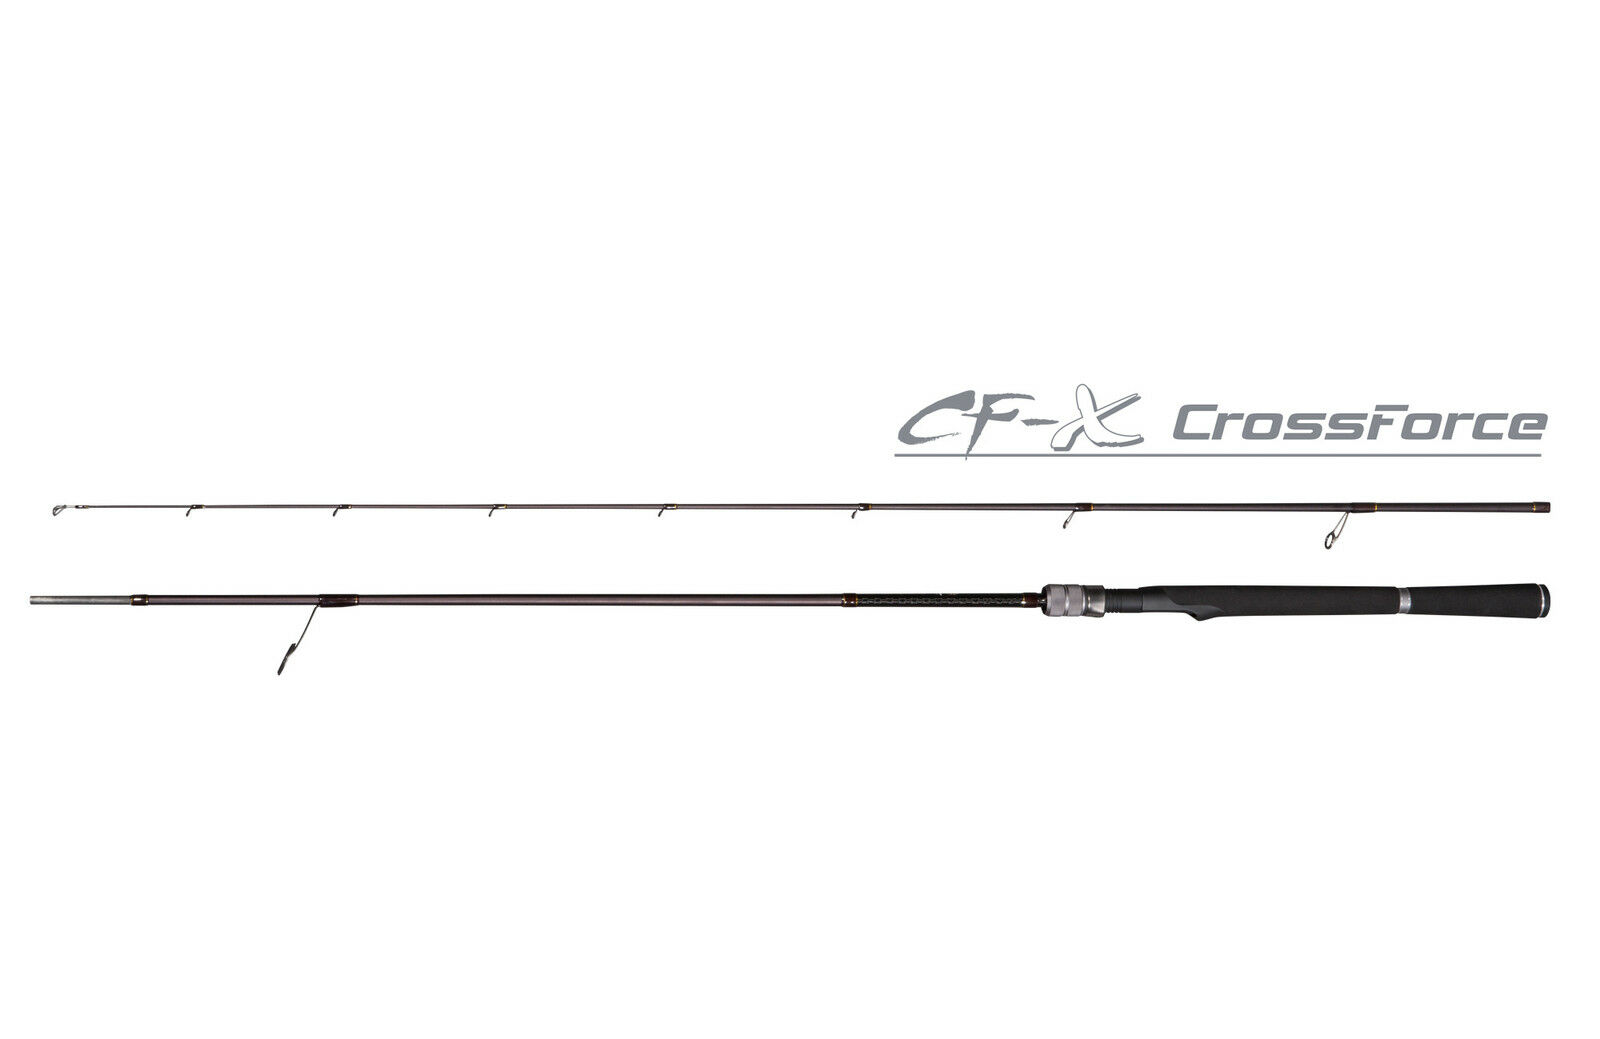 Dragon CXT SPINN crossforce CFXSpinning Rods